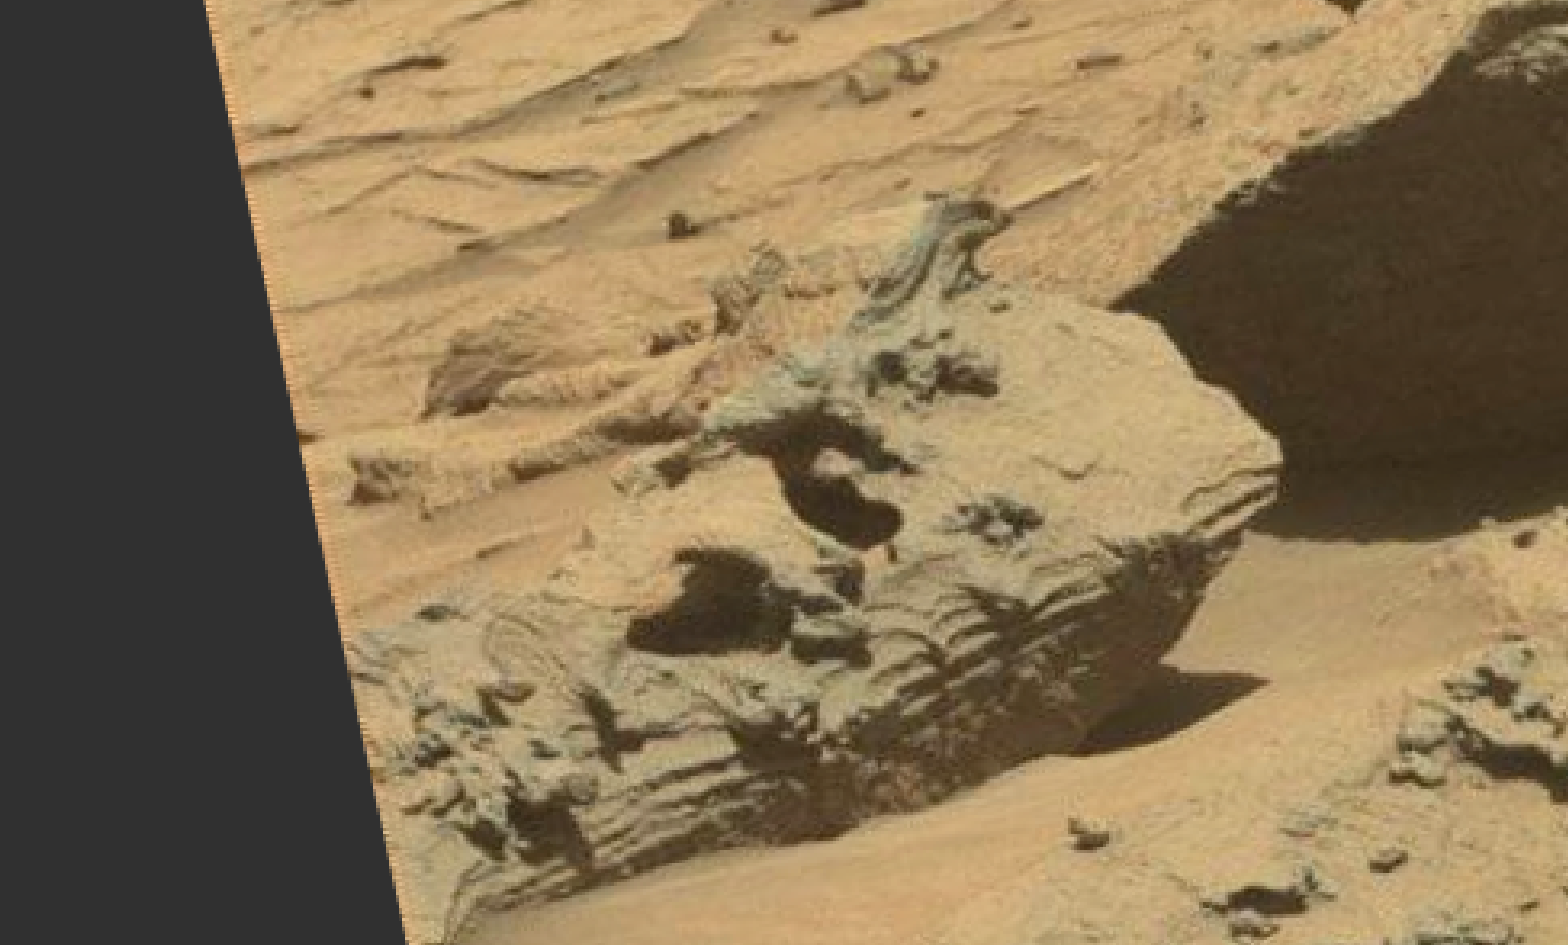 12 Bizarre Discoveries on Mars from Mars Orbiter Mars-sol-1293-anomaly-artifacts-3-was-life-on-mars